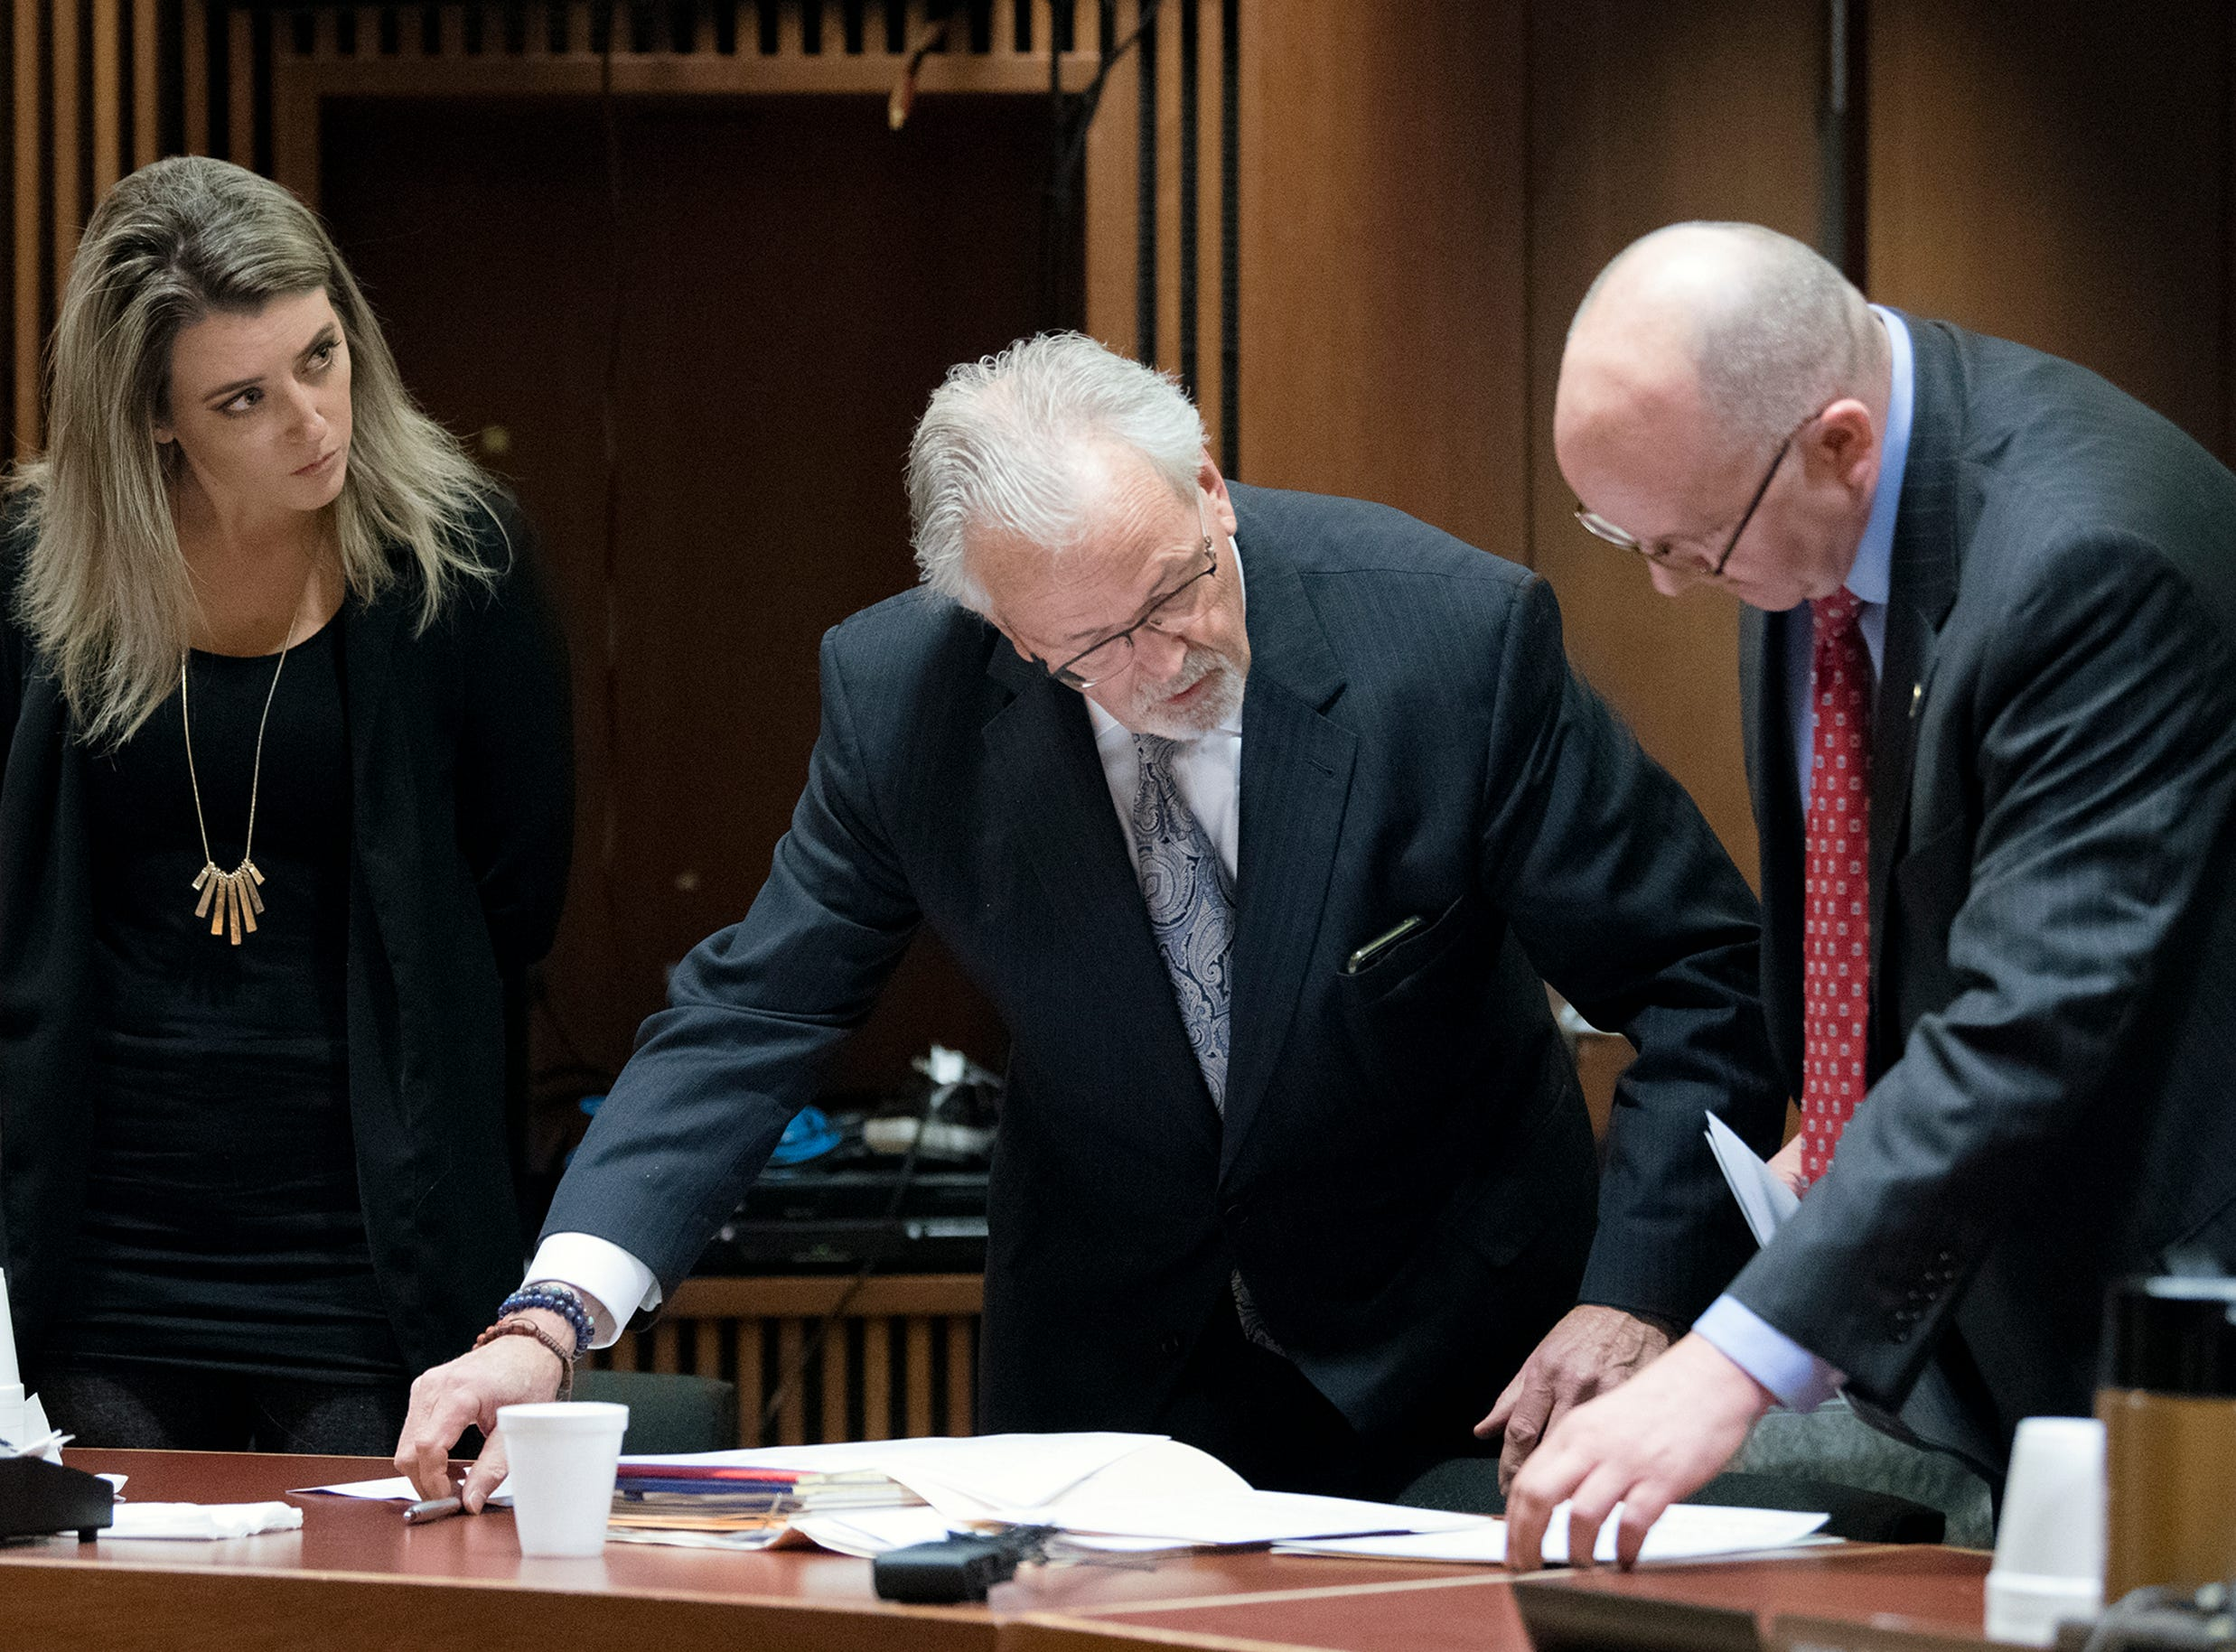 Kate McClure, from left, appears in court alongside her attorney James Gerrow and prosecutor Andrew McDonnell Monday, April 15, 2019 at Burlington County Superior Court in Mount Holly, N.J. McClure pleaded guilty to a state charge in a 'good Samaritan' scam of GoFundMe donors and faces four years in jail.